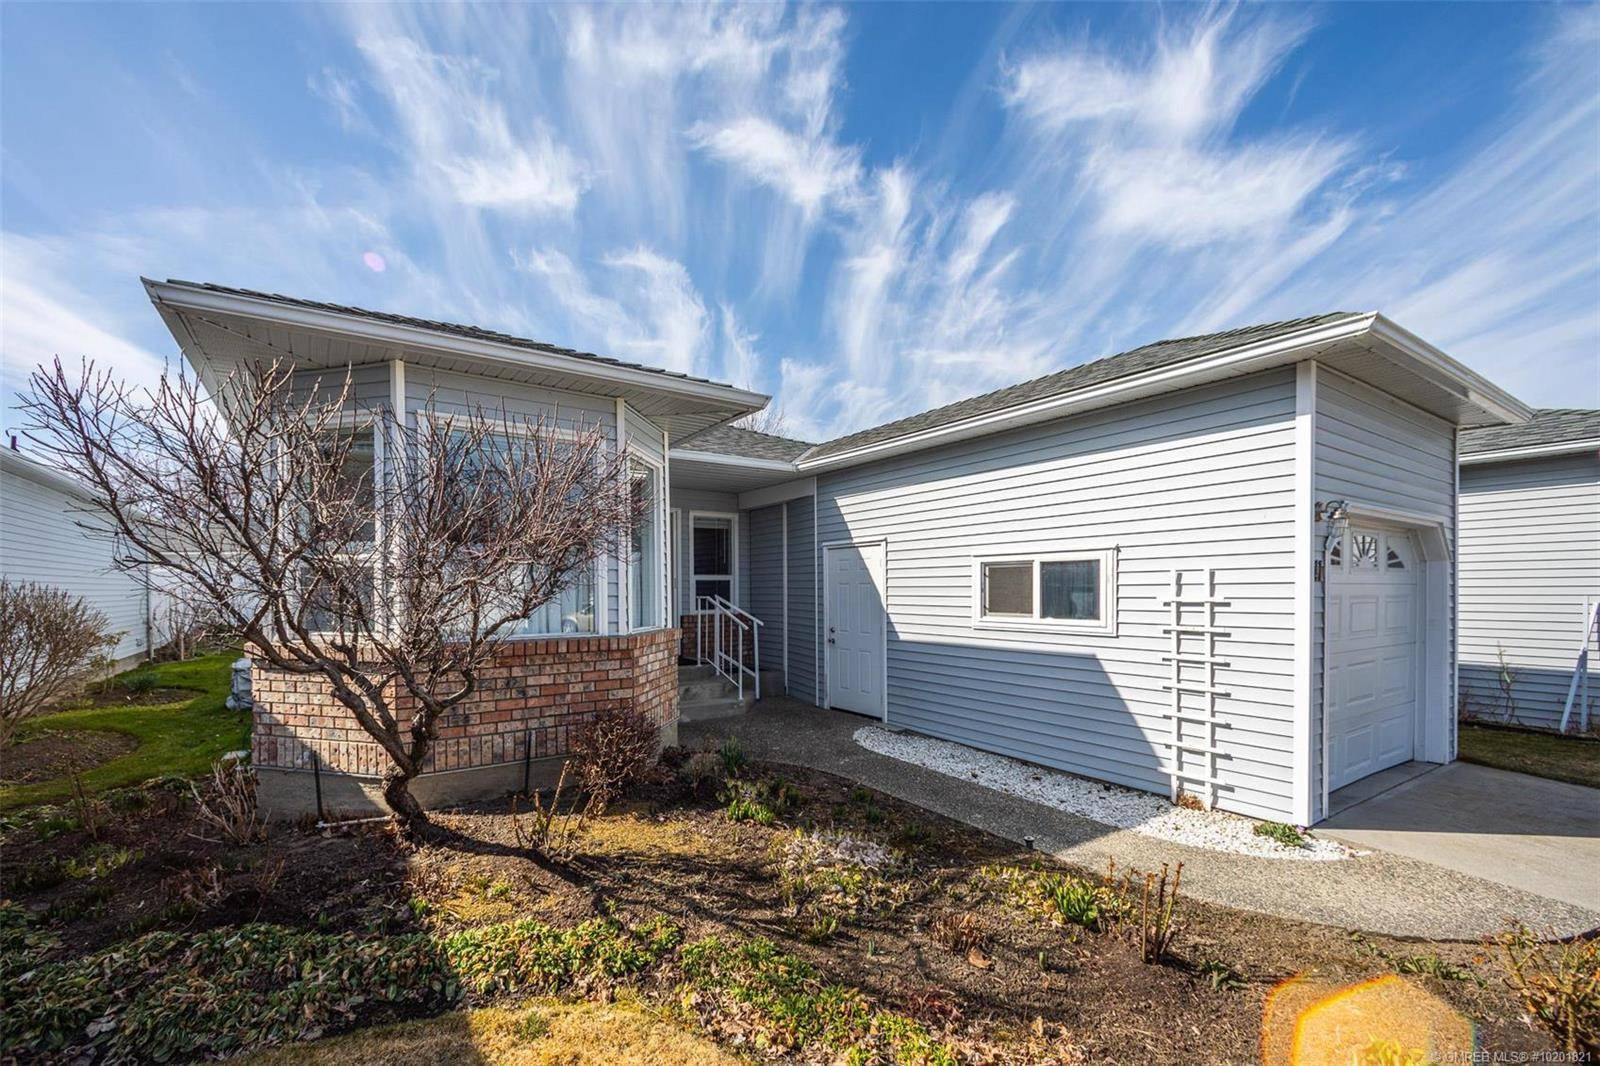 House for sale at 1101 Cameron Ave Unit 41 Kelowna British Columbia - MLS: 10201821